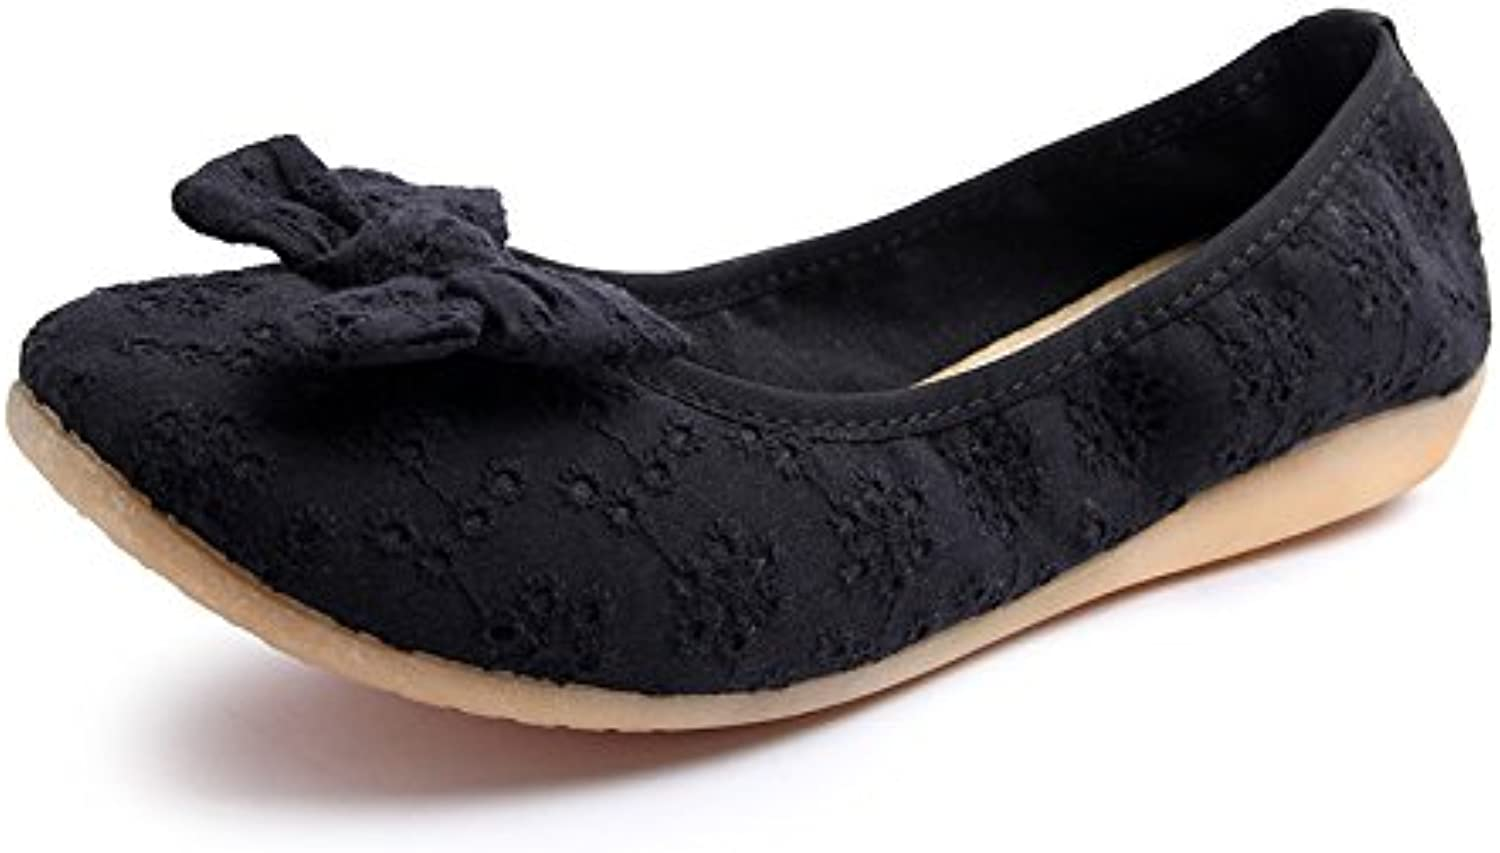 WHW Women shoes mesh upper omelets shoes single shoes with soft, non-slip shoes ,black,37 port Pregnant Women